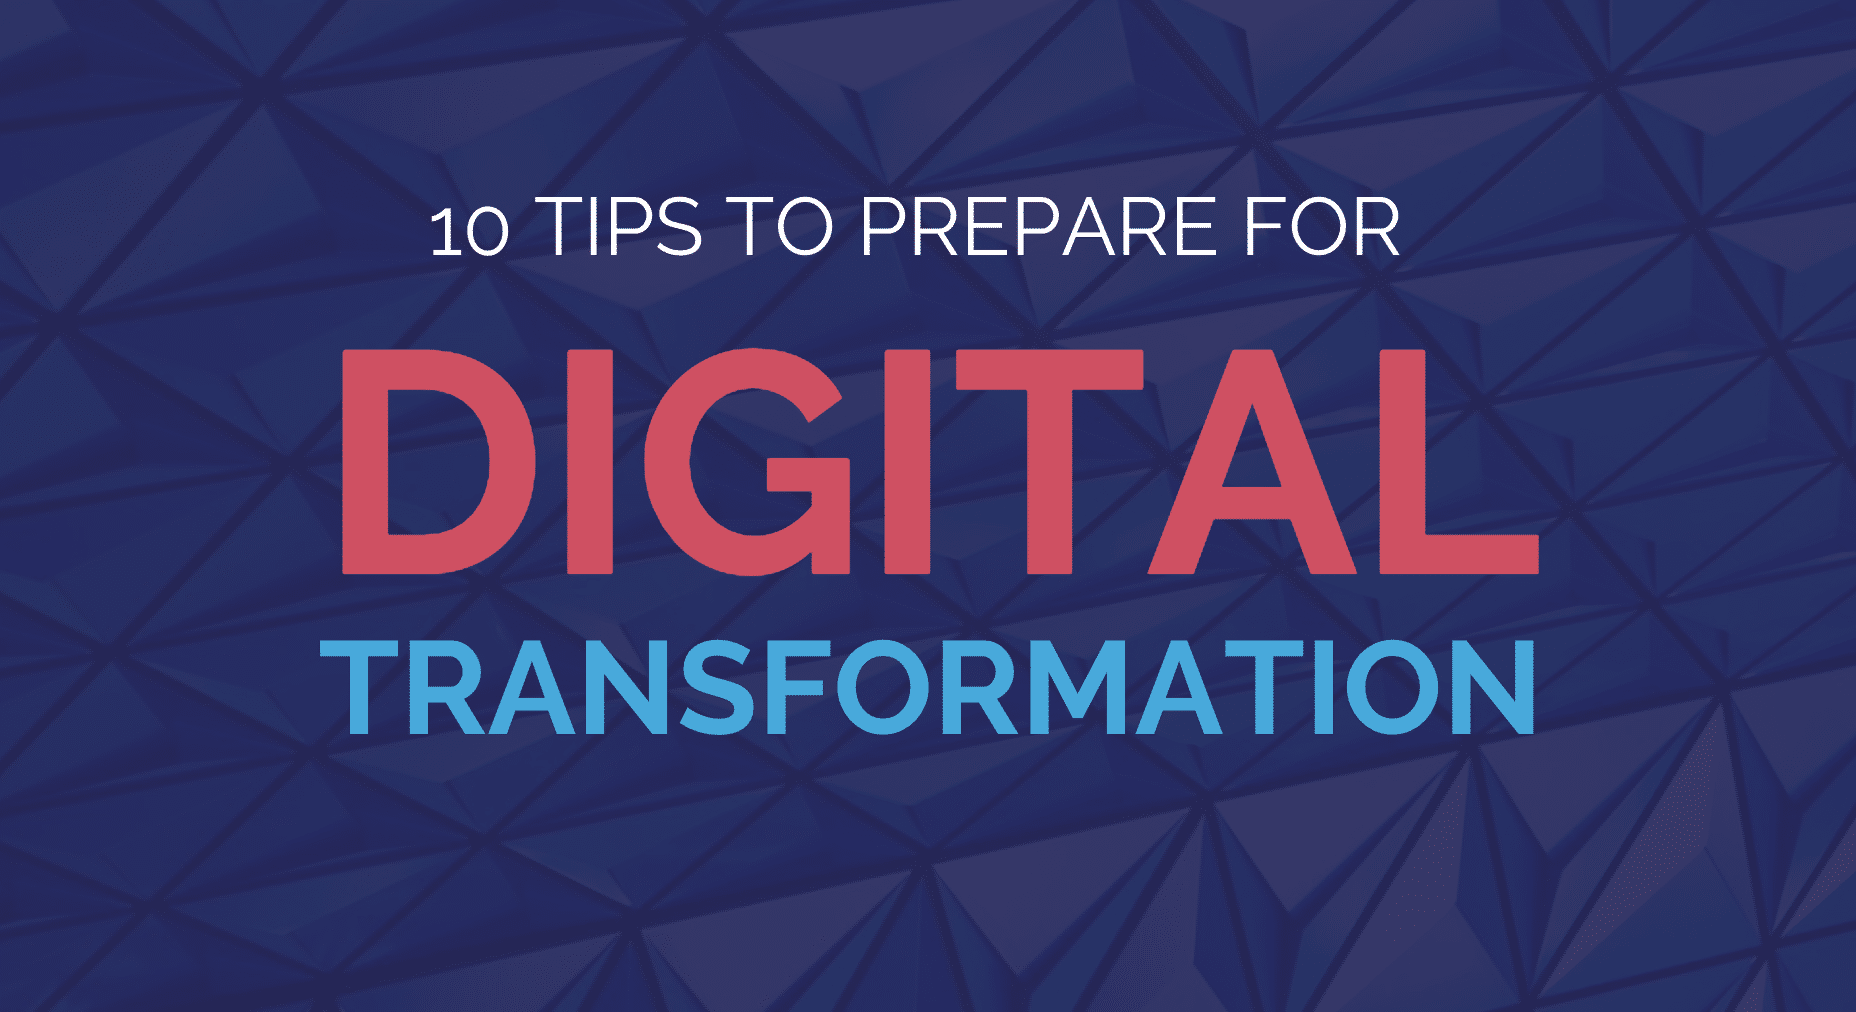 Ten Tips to Prepare for Digital Transformation